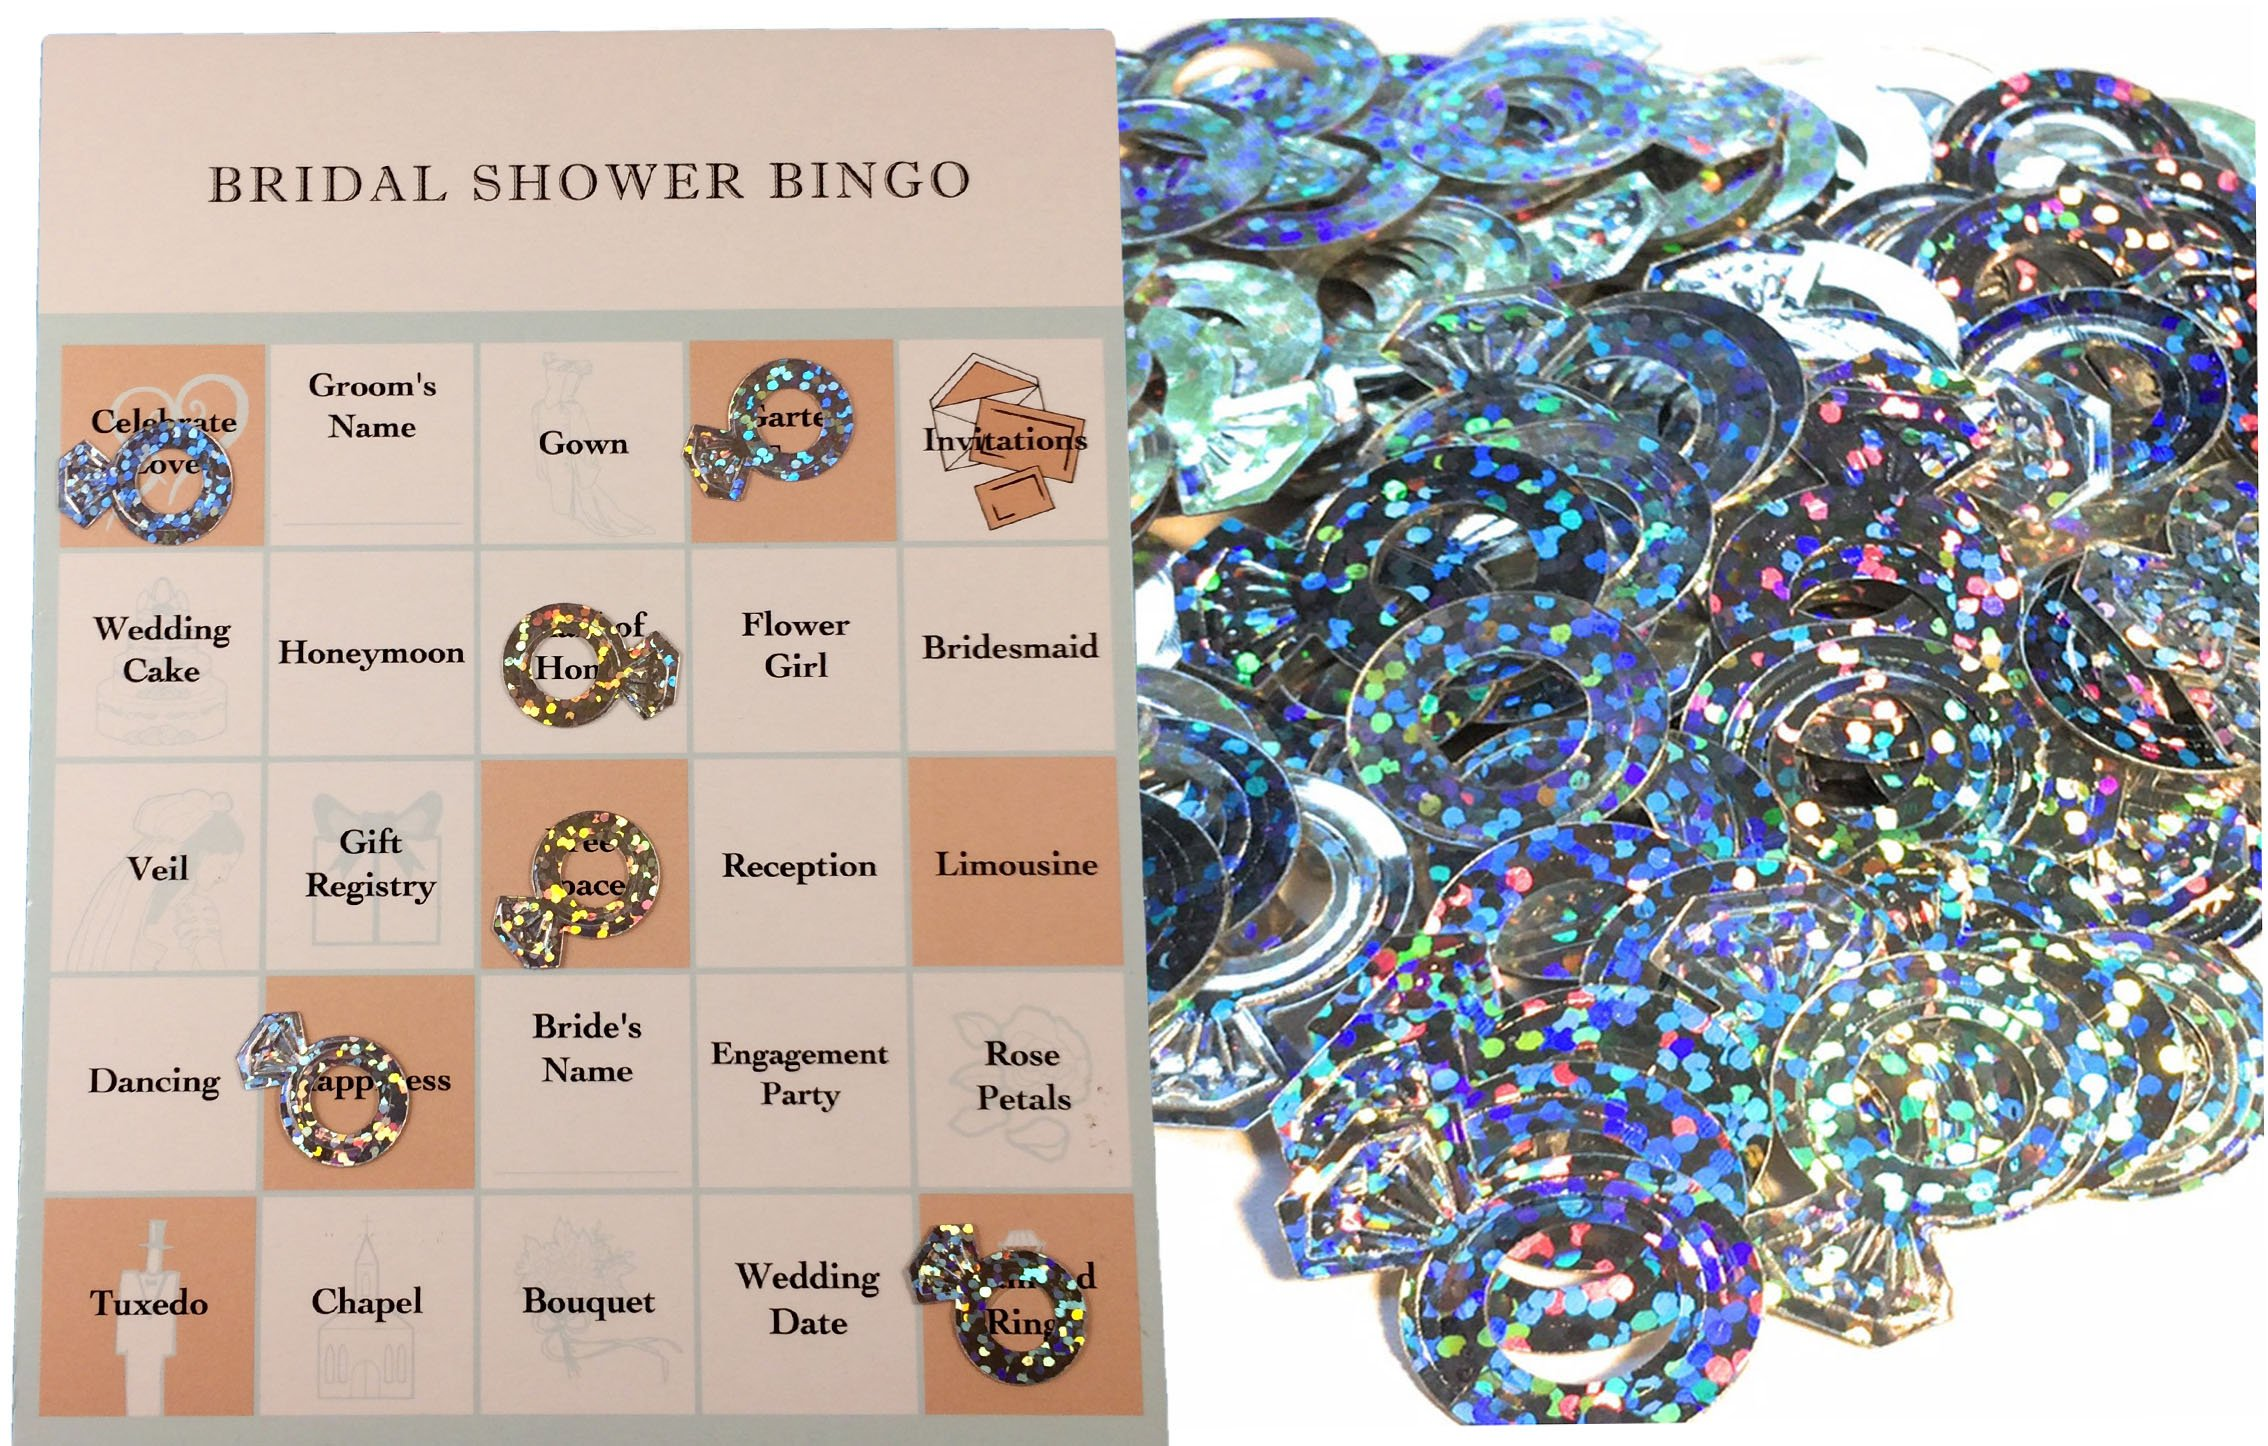 Bridal Shower Party Game Set - Bingo - Engagement Diamond Ring Shaped Bingo Chips that Doubles as Wedding Table Confetti - Bingo Cards for 24 Guests by Fun Fashion Frills